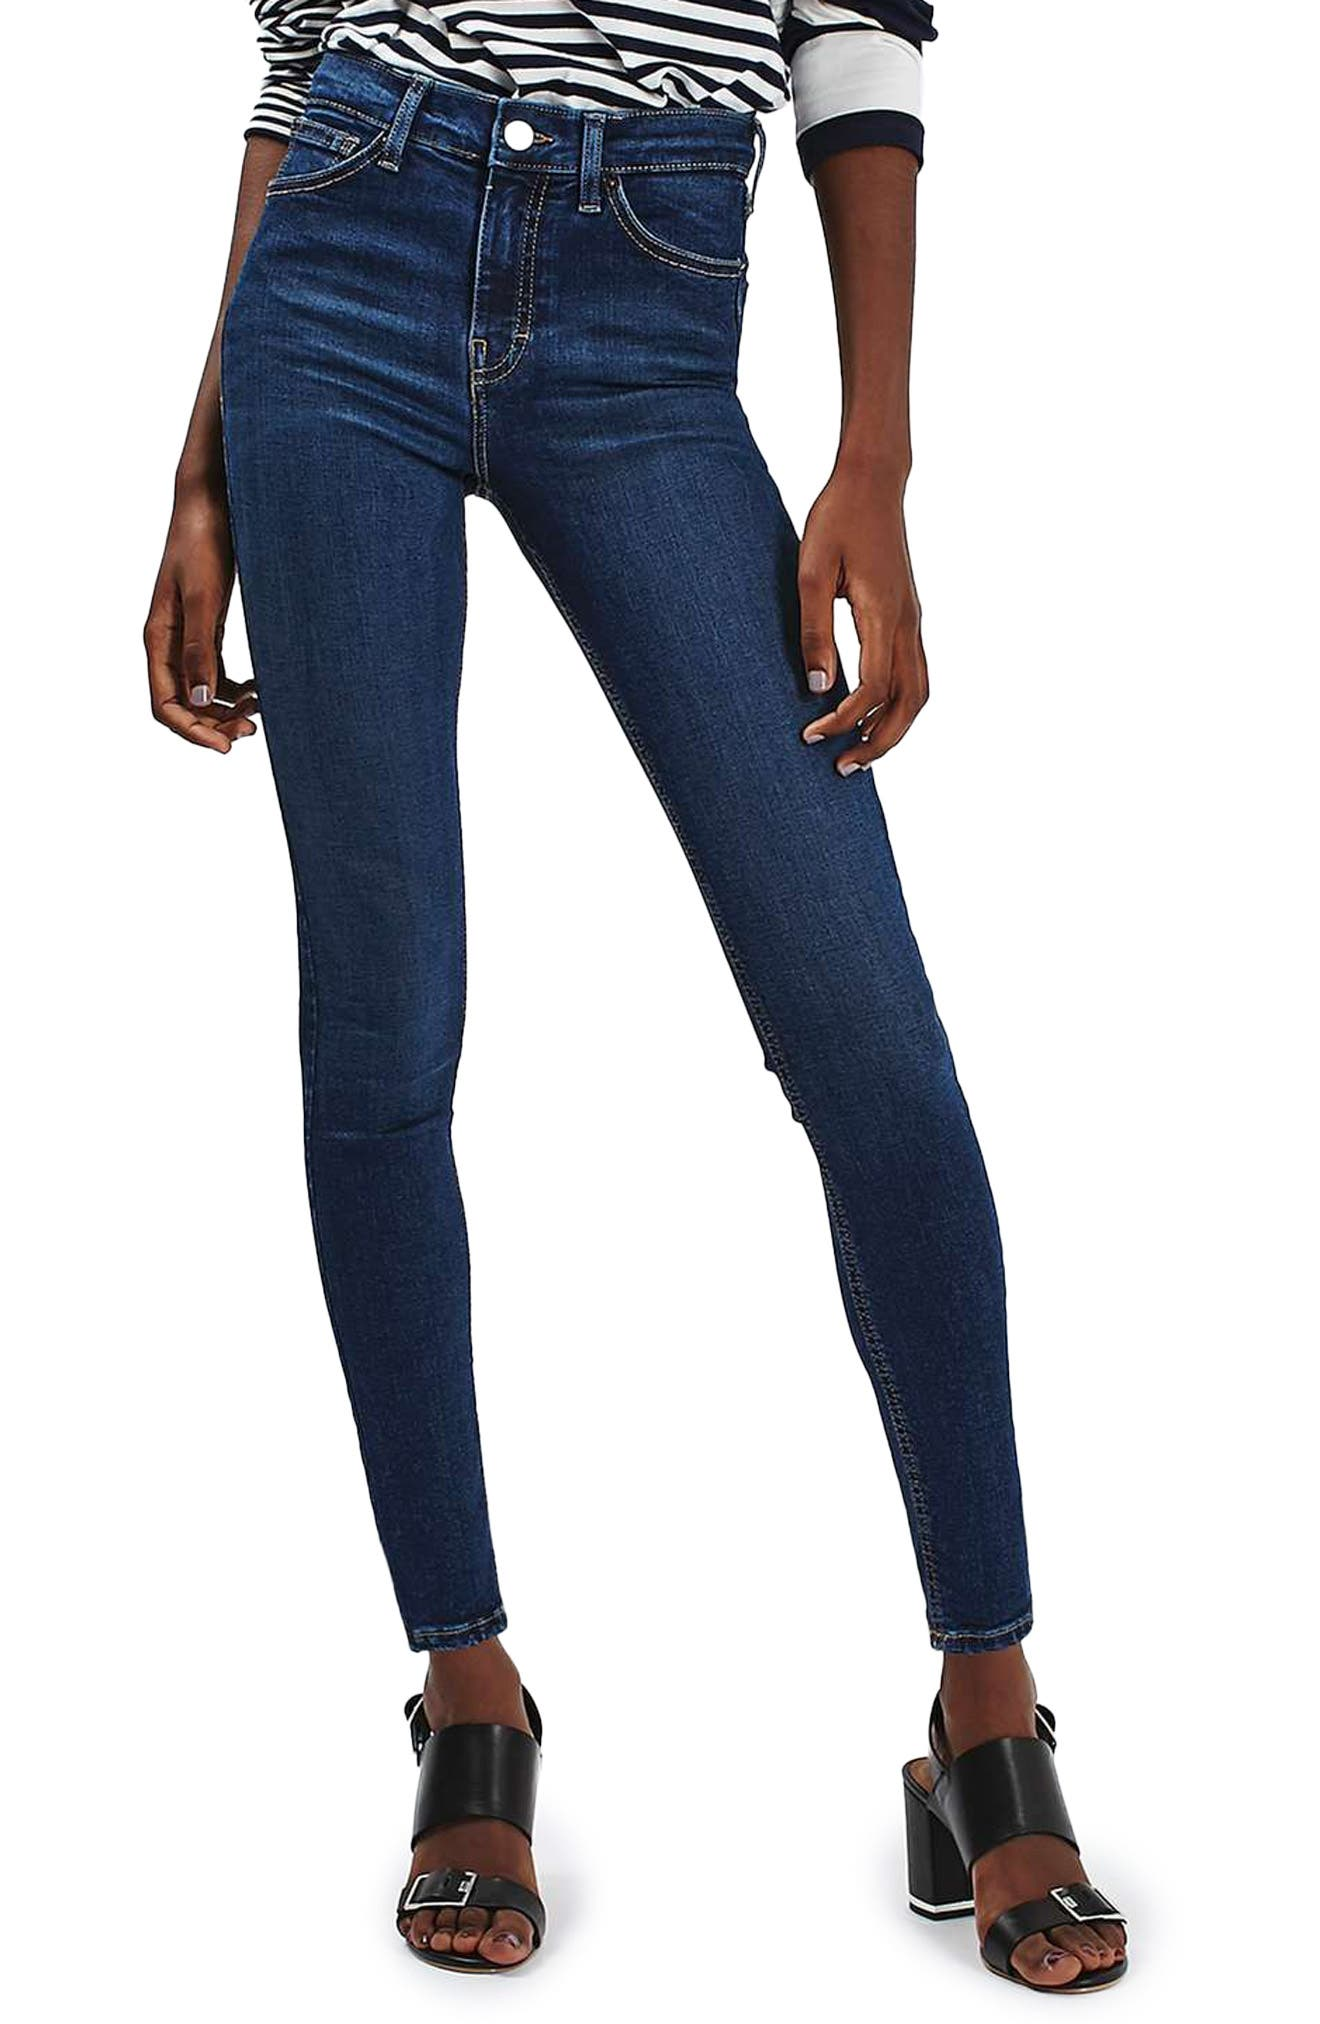 Jamie High Waist Ankle Skinny Jeans,                             Main thumbnail 1, color,                             Indigo